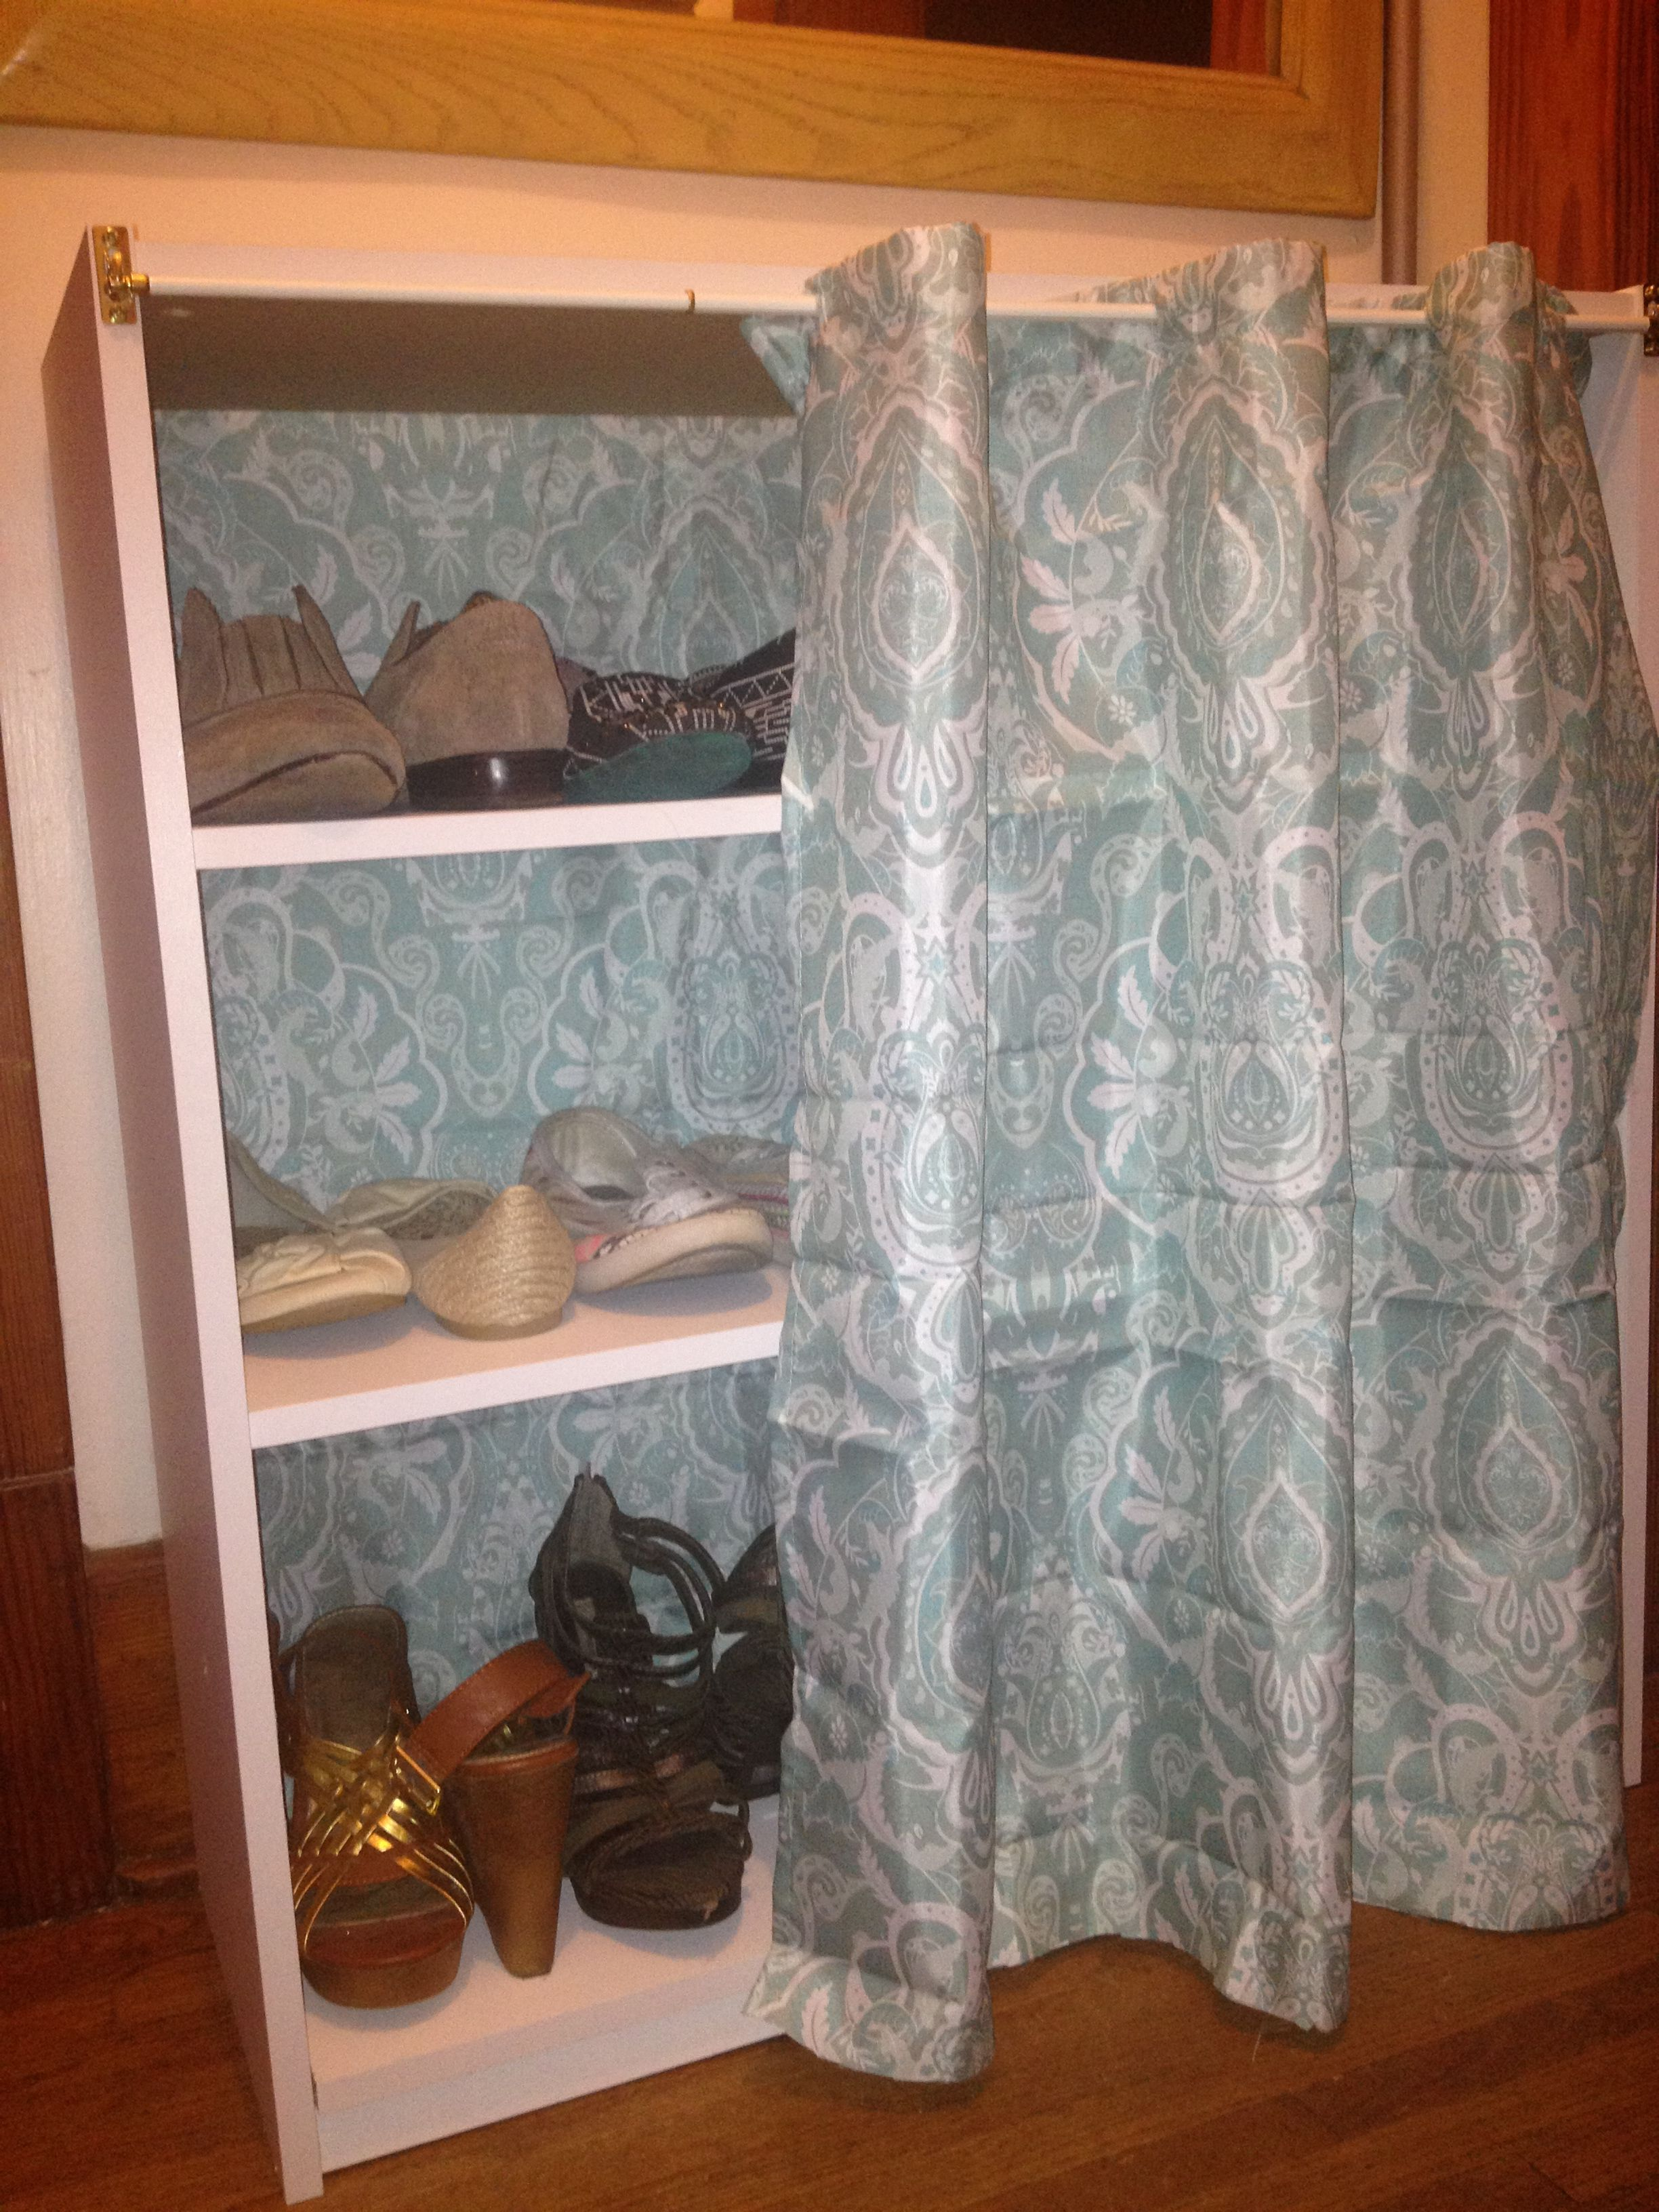 Inexpensive Shoe Hideaway By Using A Wal Mart Bookshelf Curtain